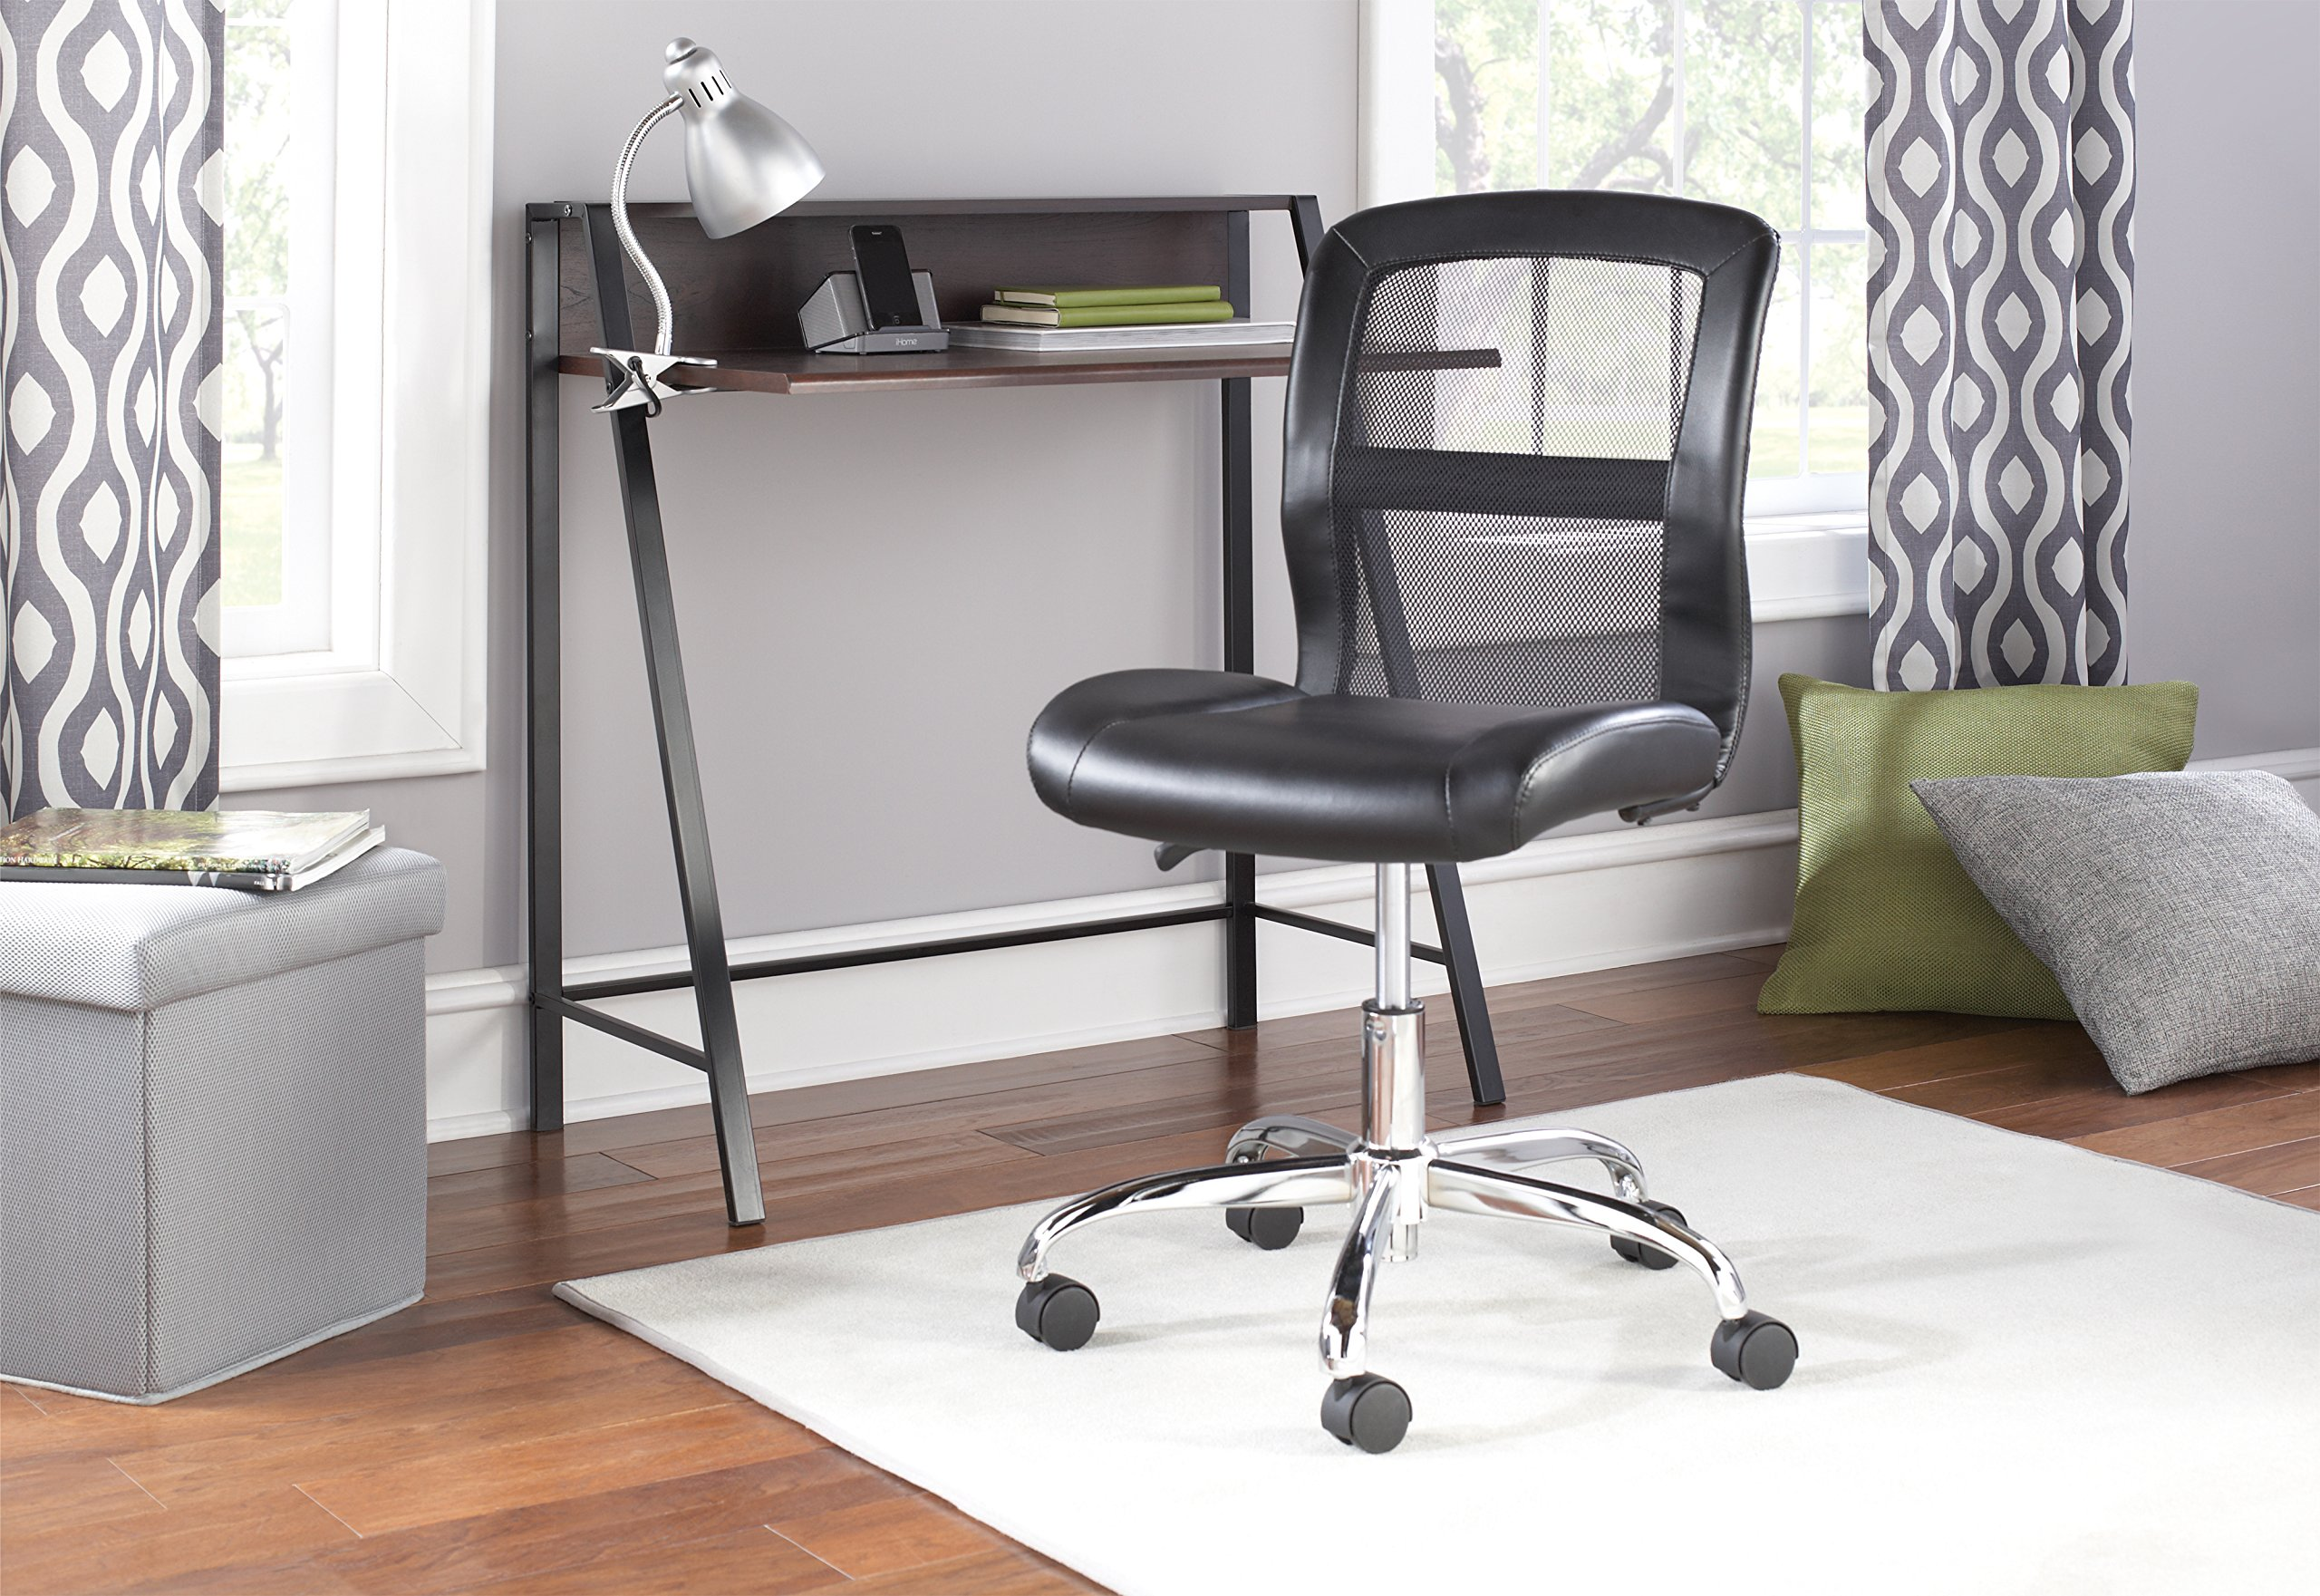 Comfortable Vinyl and Mesh Task Chair with Durable Metal Base, One-Touch Pneumatic Height Adjustment, Padded Seat and Back for Comfort + Expert Home Guide by Love US